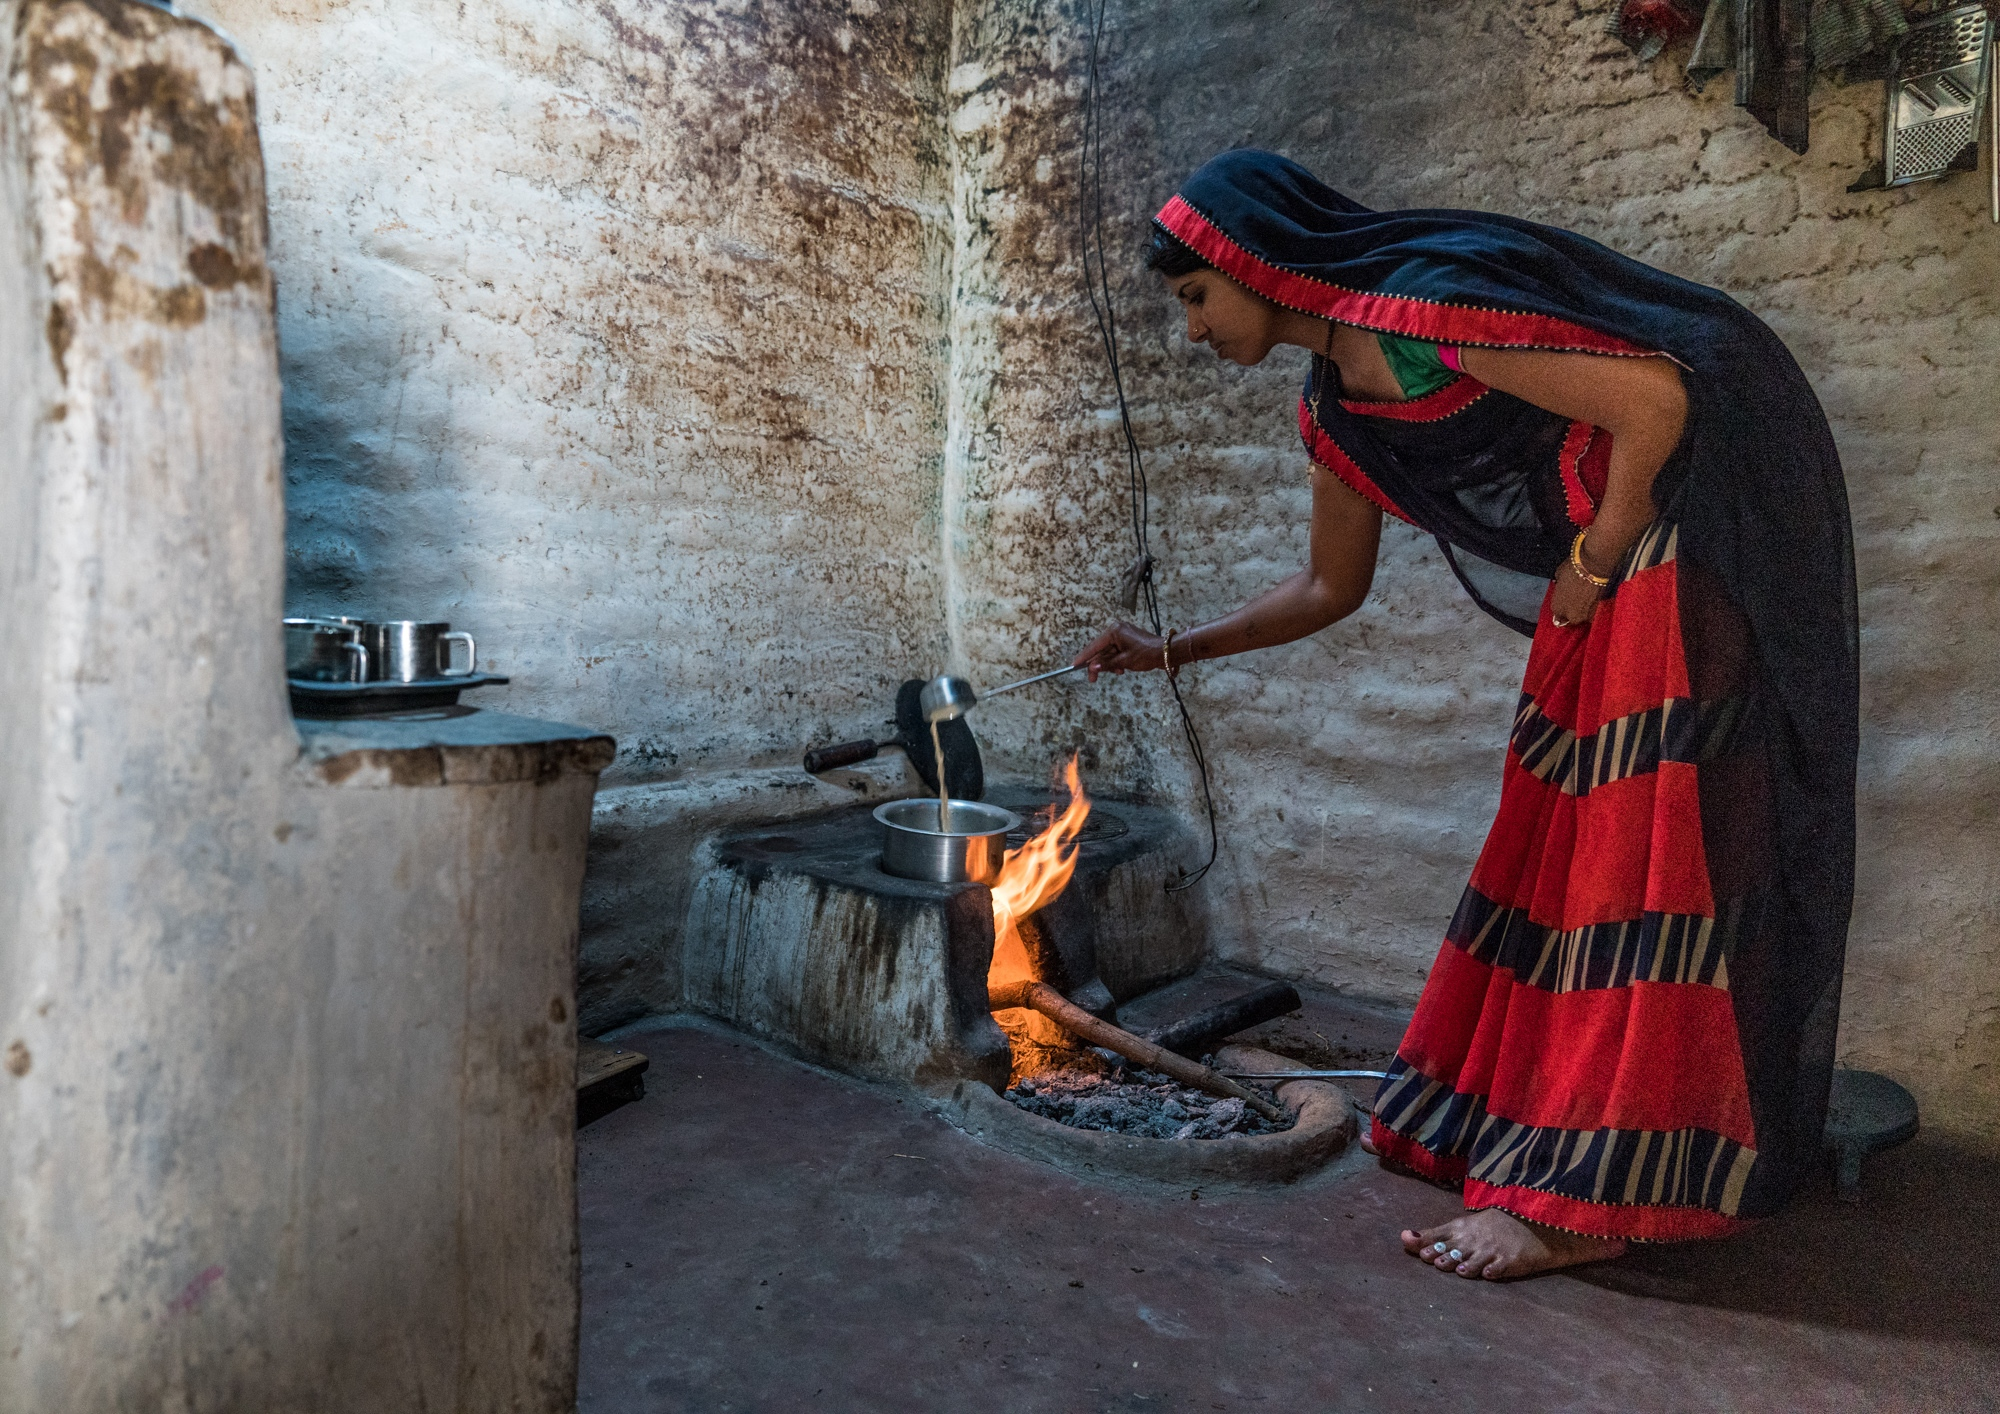 Soot stains the walls of a rural kitchen where a woman prepares chai fuelling the fire with a mixture of wood and dung. Central India.